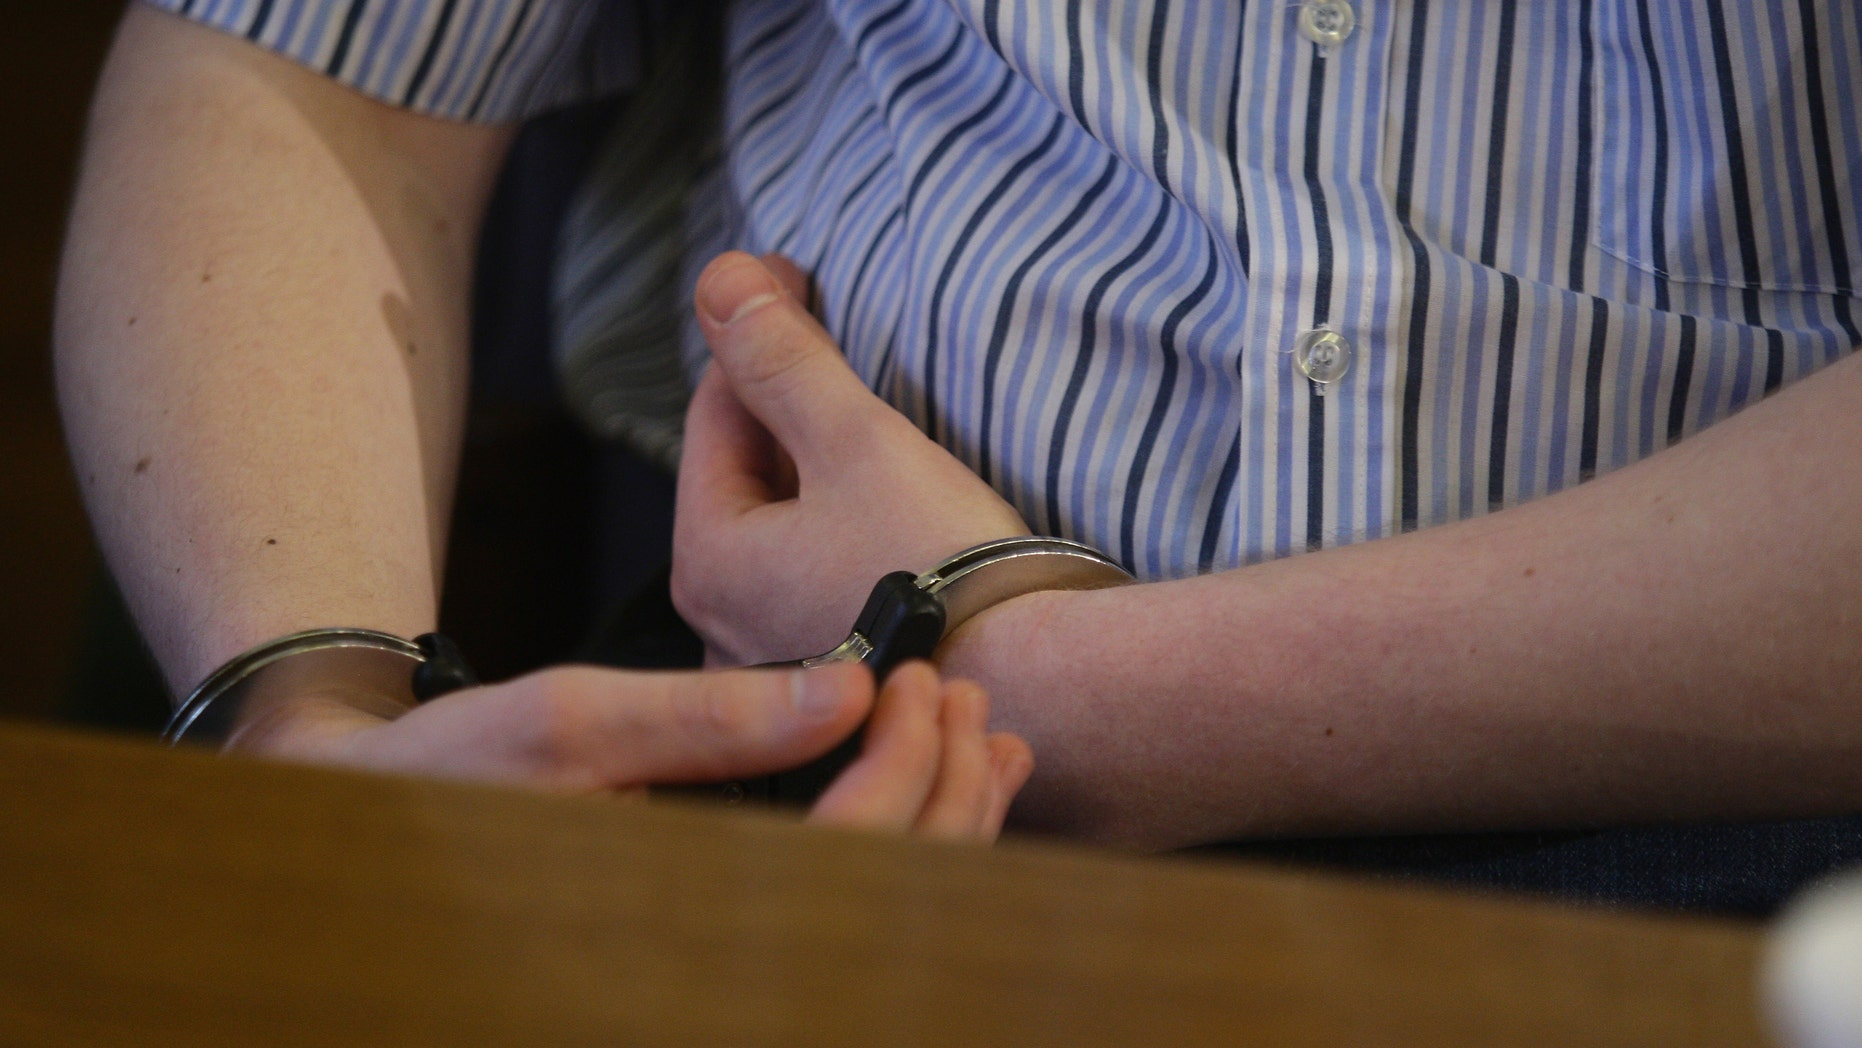 LEIPZIG, GERMANY - AUGUST 17:  The accused Daniel V. in handcuffs is seen at the Leipzig district court at the first day of the 'Michelle' trial on August 17, 2009 in Leipzig, Germany. Accused Daniel is suspect in the murder of the eight year old child Michelle, who was found dead in a Leipzig pond in September, 2008.  (Photo by Andreas Rentz/Getty Images)